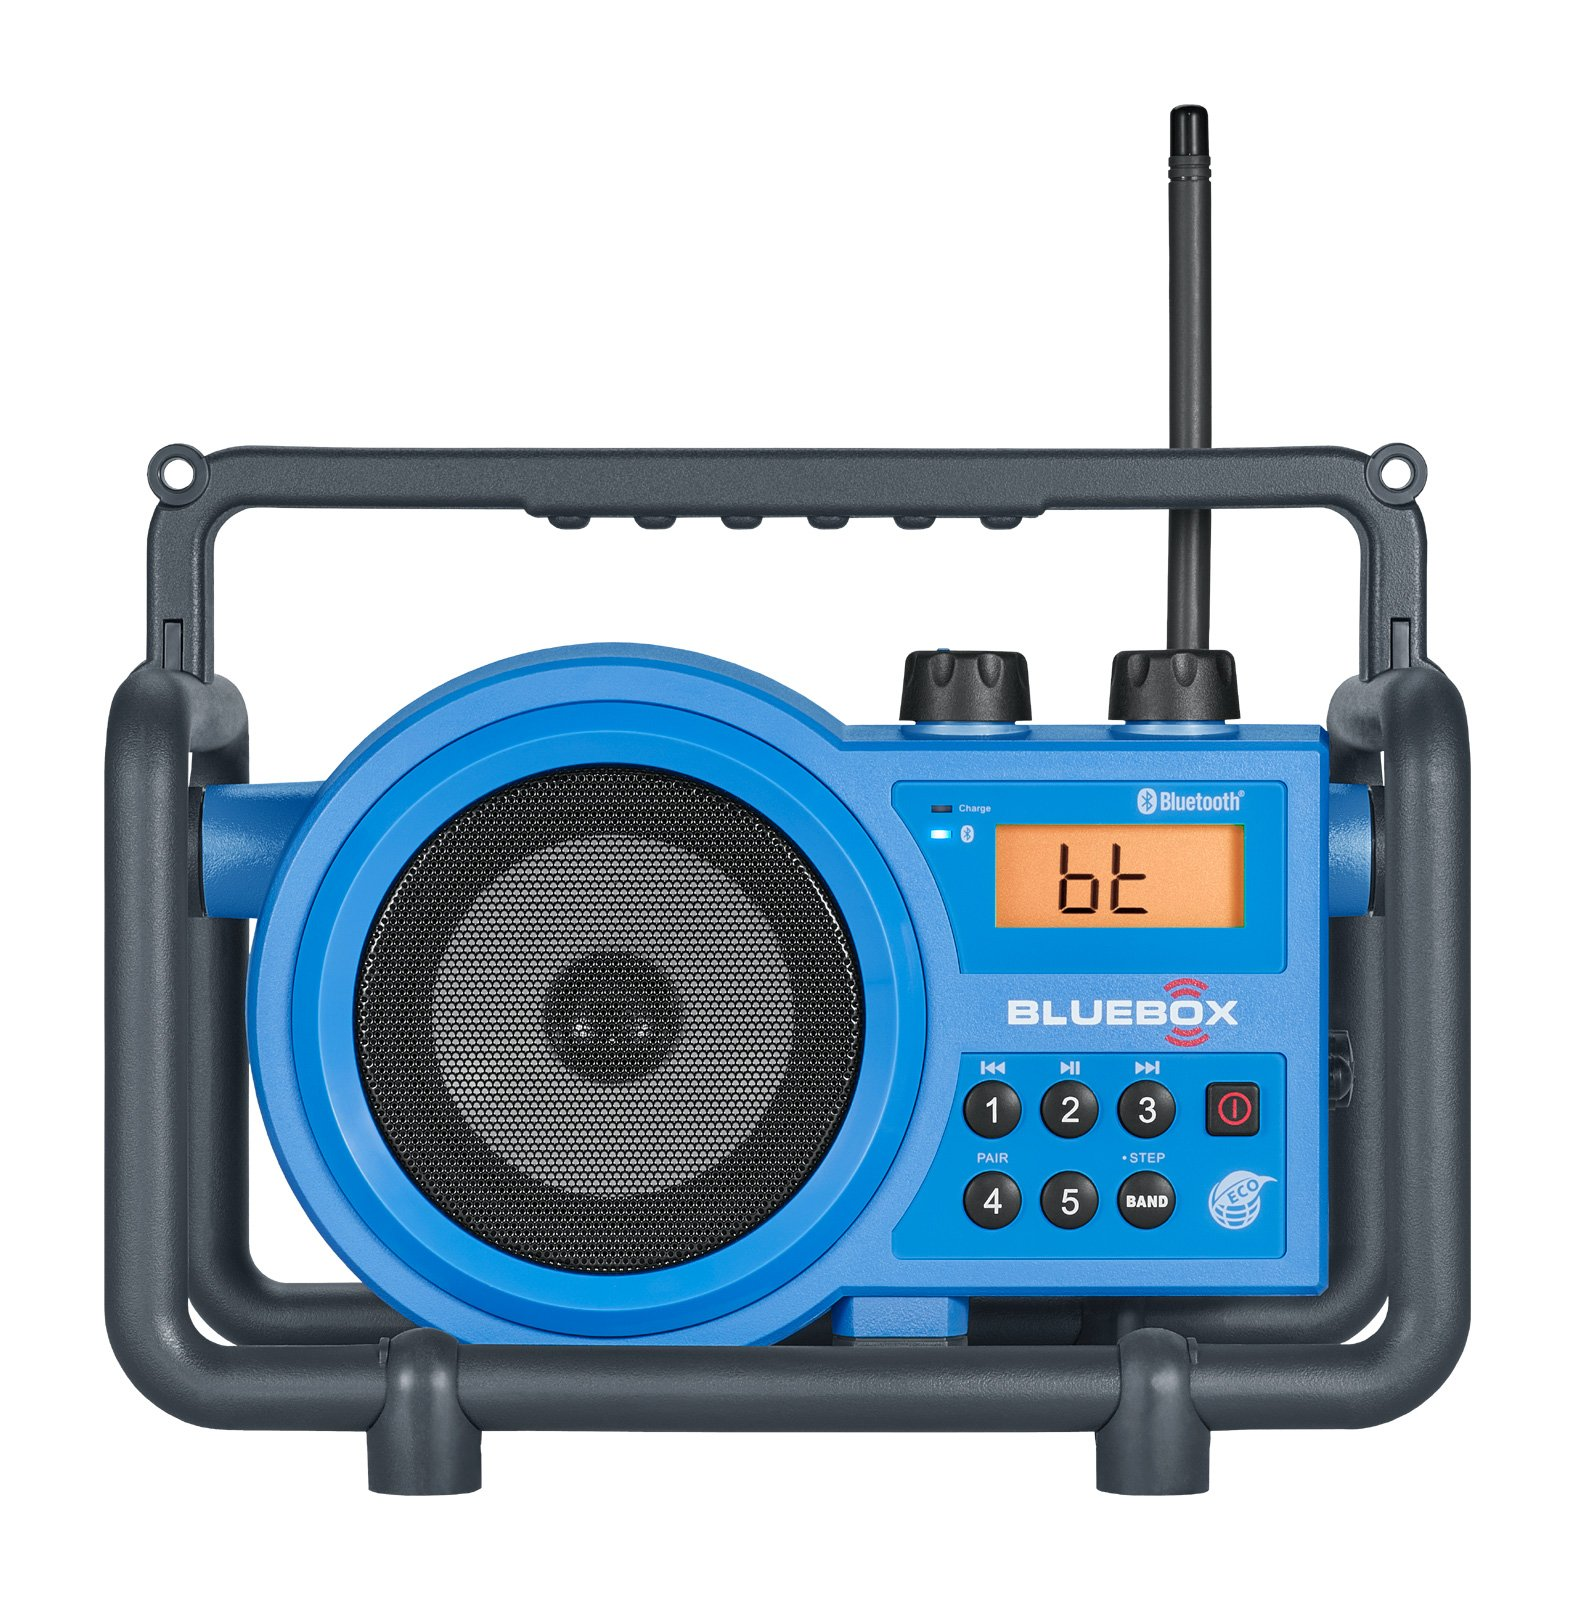 Sangean Portable Bluetooth Water Resistant Ultra Rugged AM/FM Radio Receiver with Large Easy to Read Backlit LCD Display